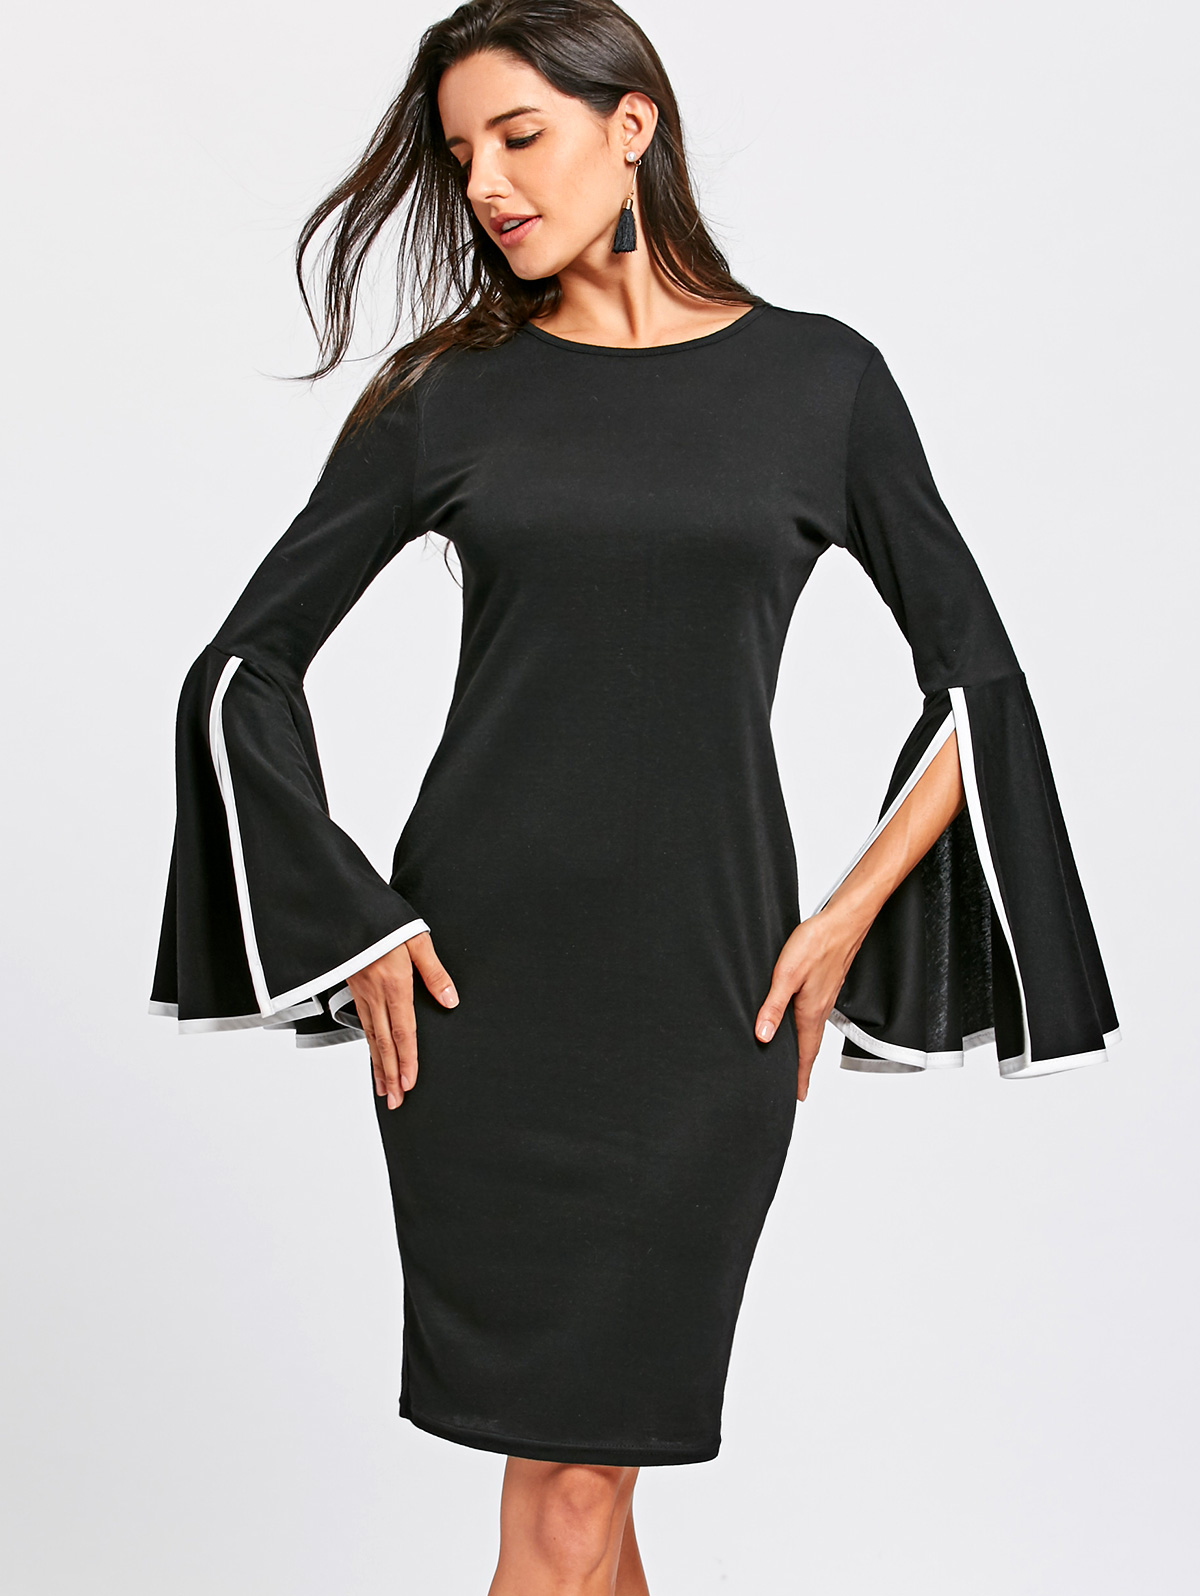 VESTLINDA Women Bobycon Dress Split Round Collar Flare Long Sleeve Pencil  Dresses Winter Elegant Black Midi Vestidos De Festa-in Dresses from Women s  ... be08782503d8